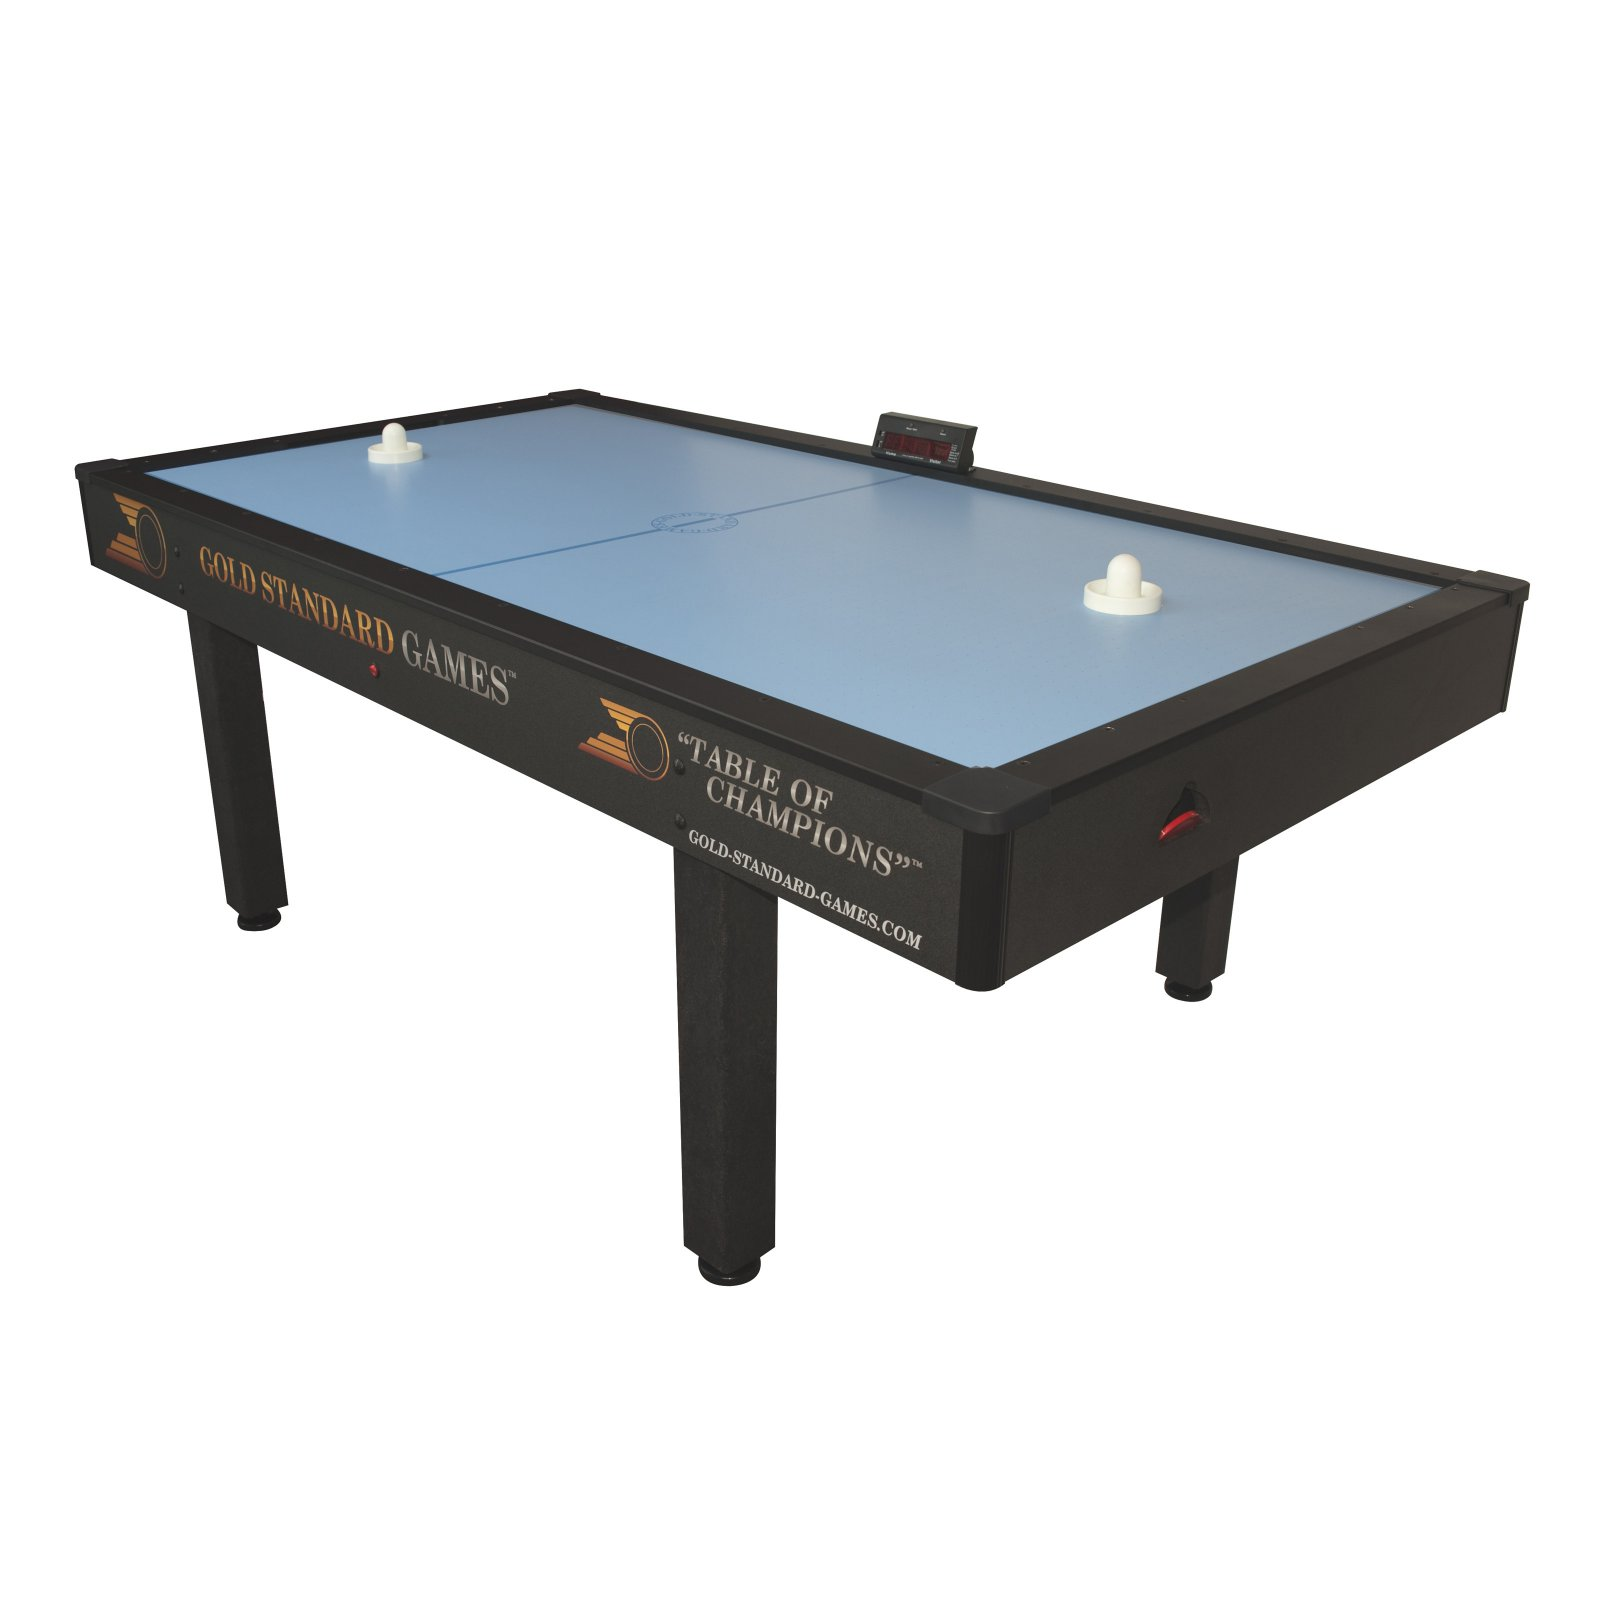 Gold Standard Games 7 ft. Home Pro Air Hockey Table by Shelti Inc